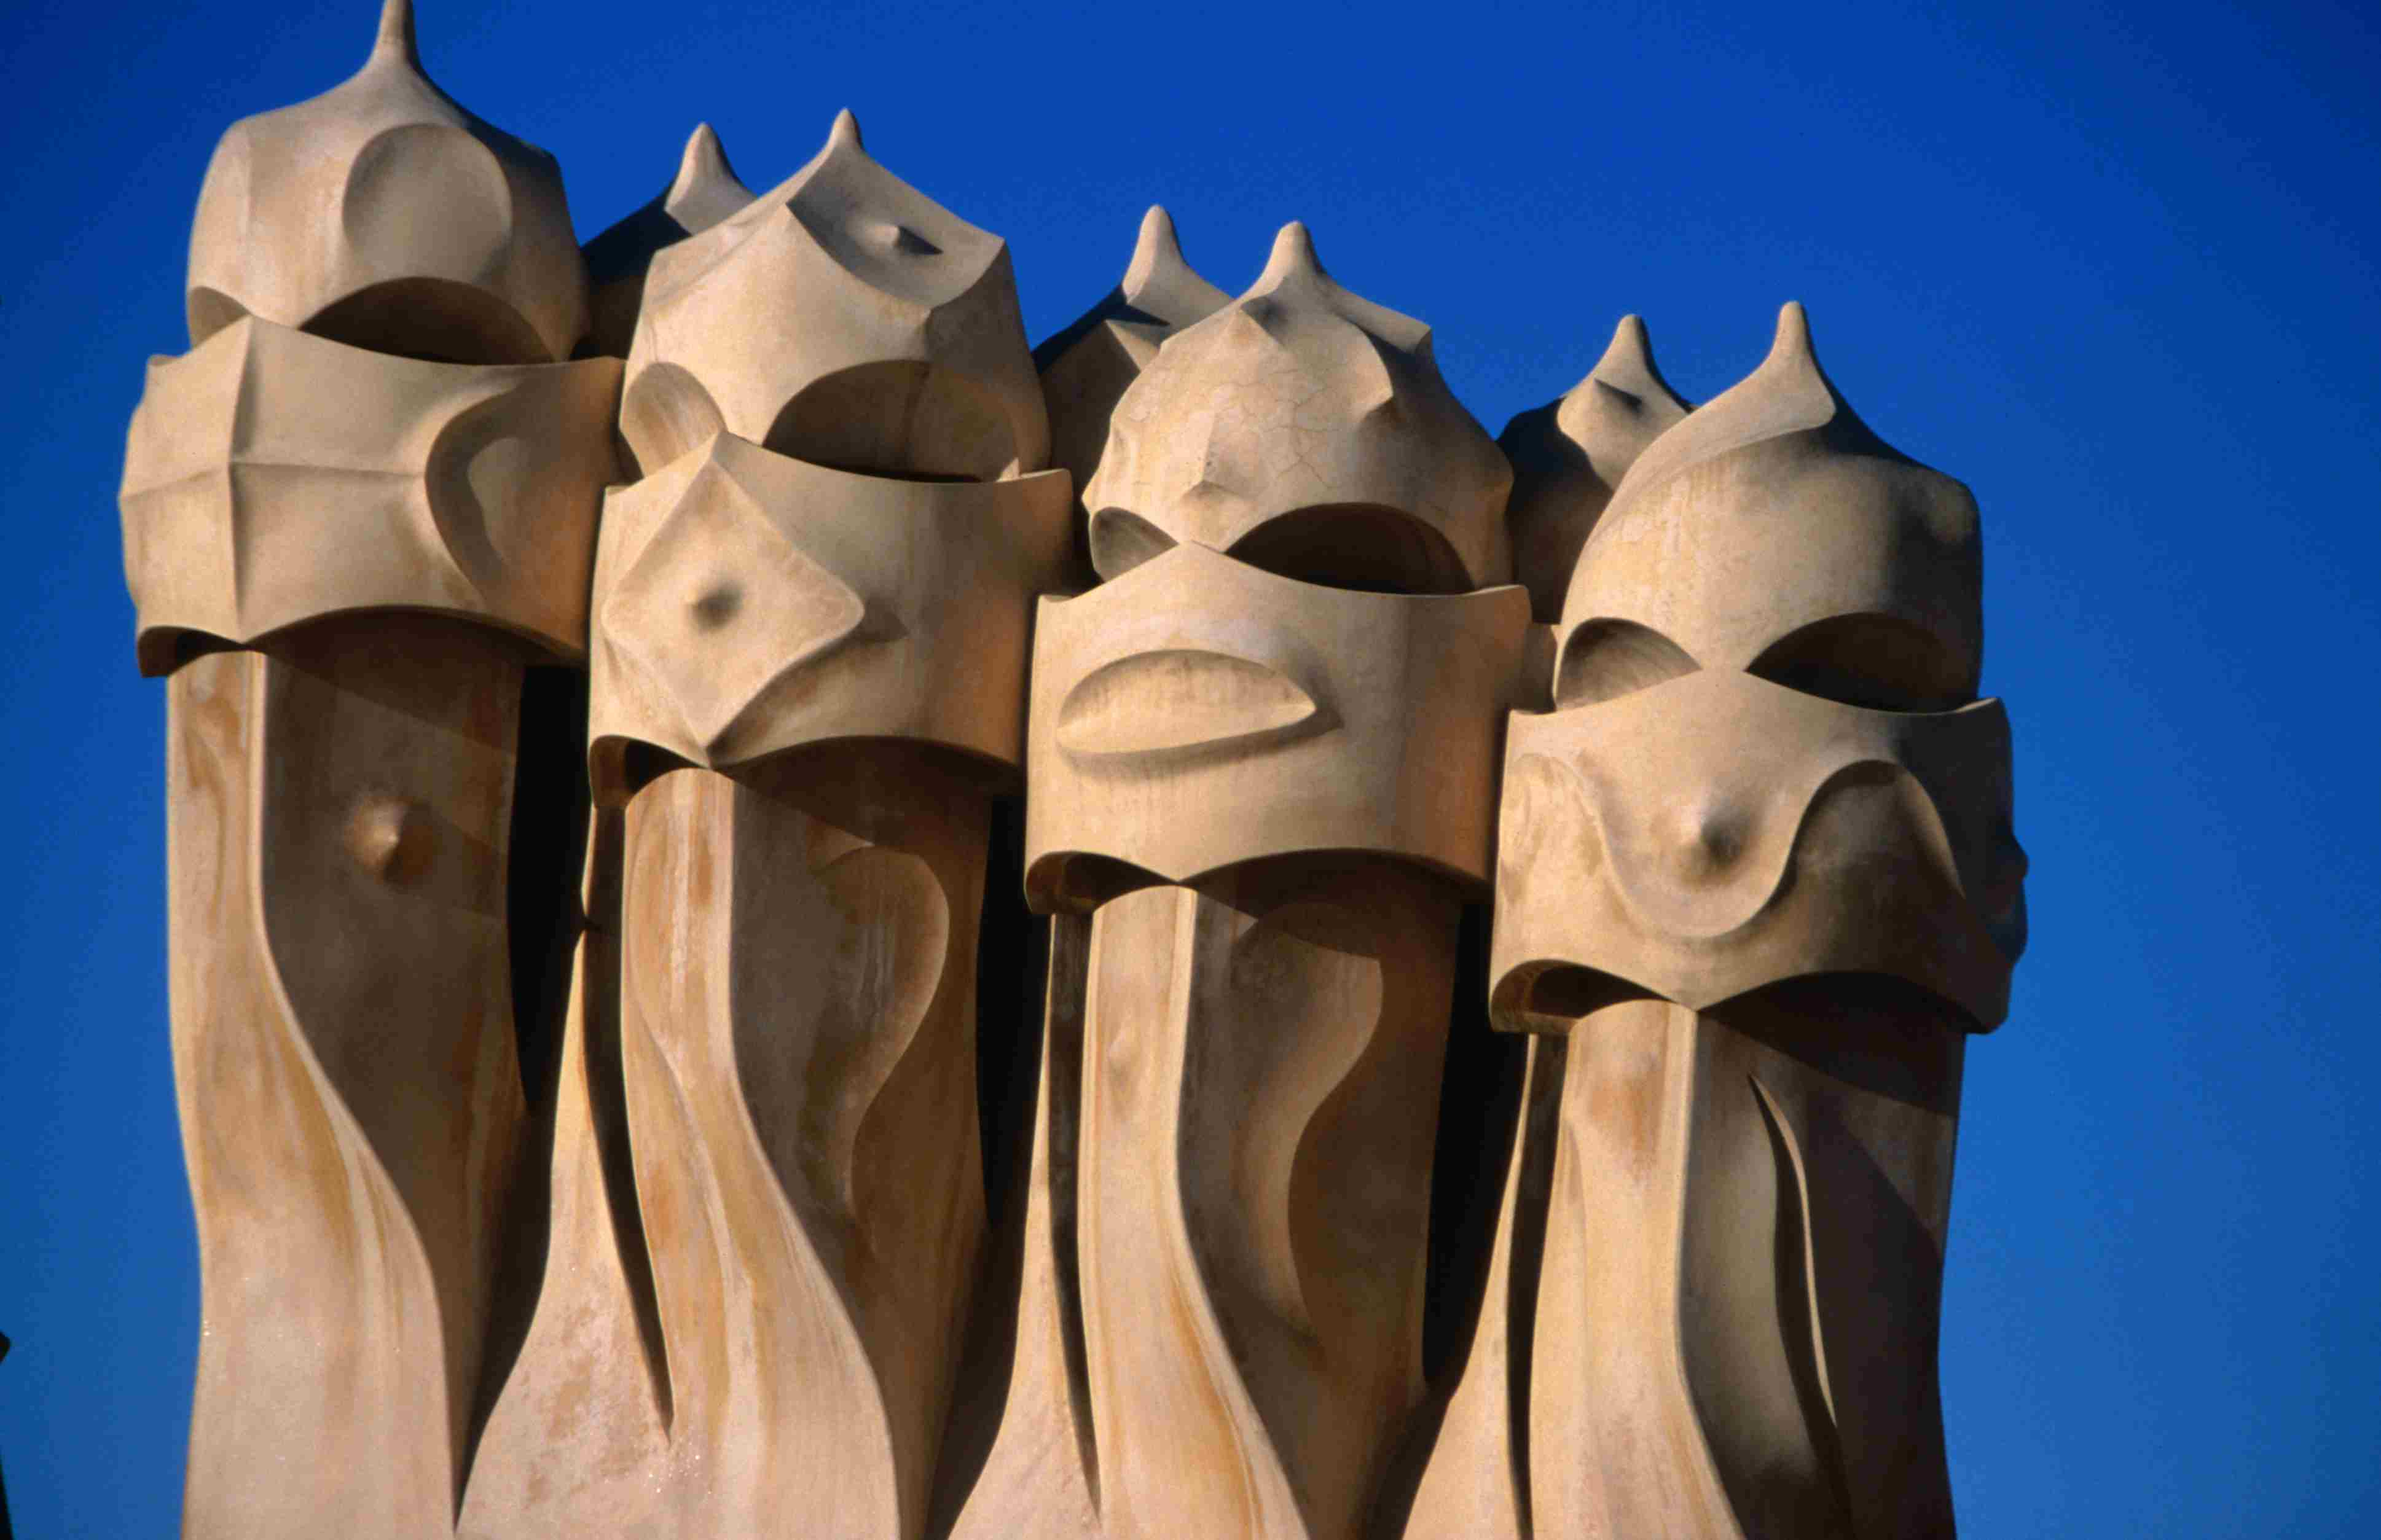 four chimney pots looking like four masked persons in clay